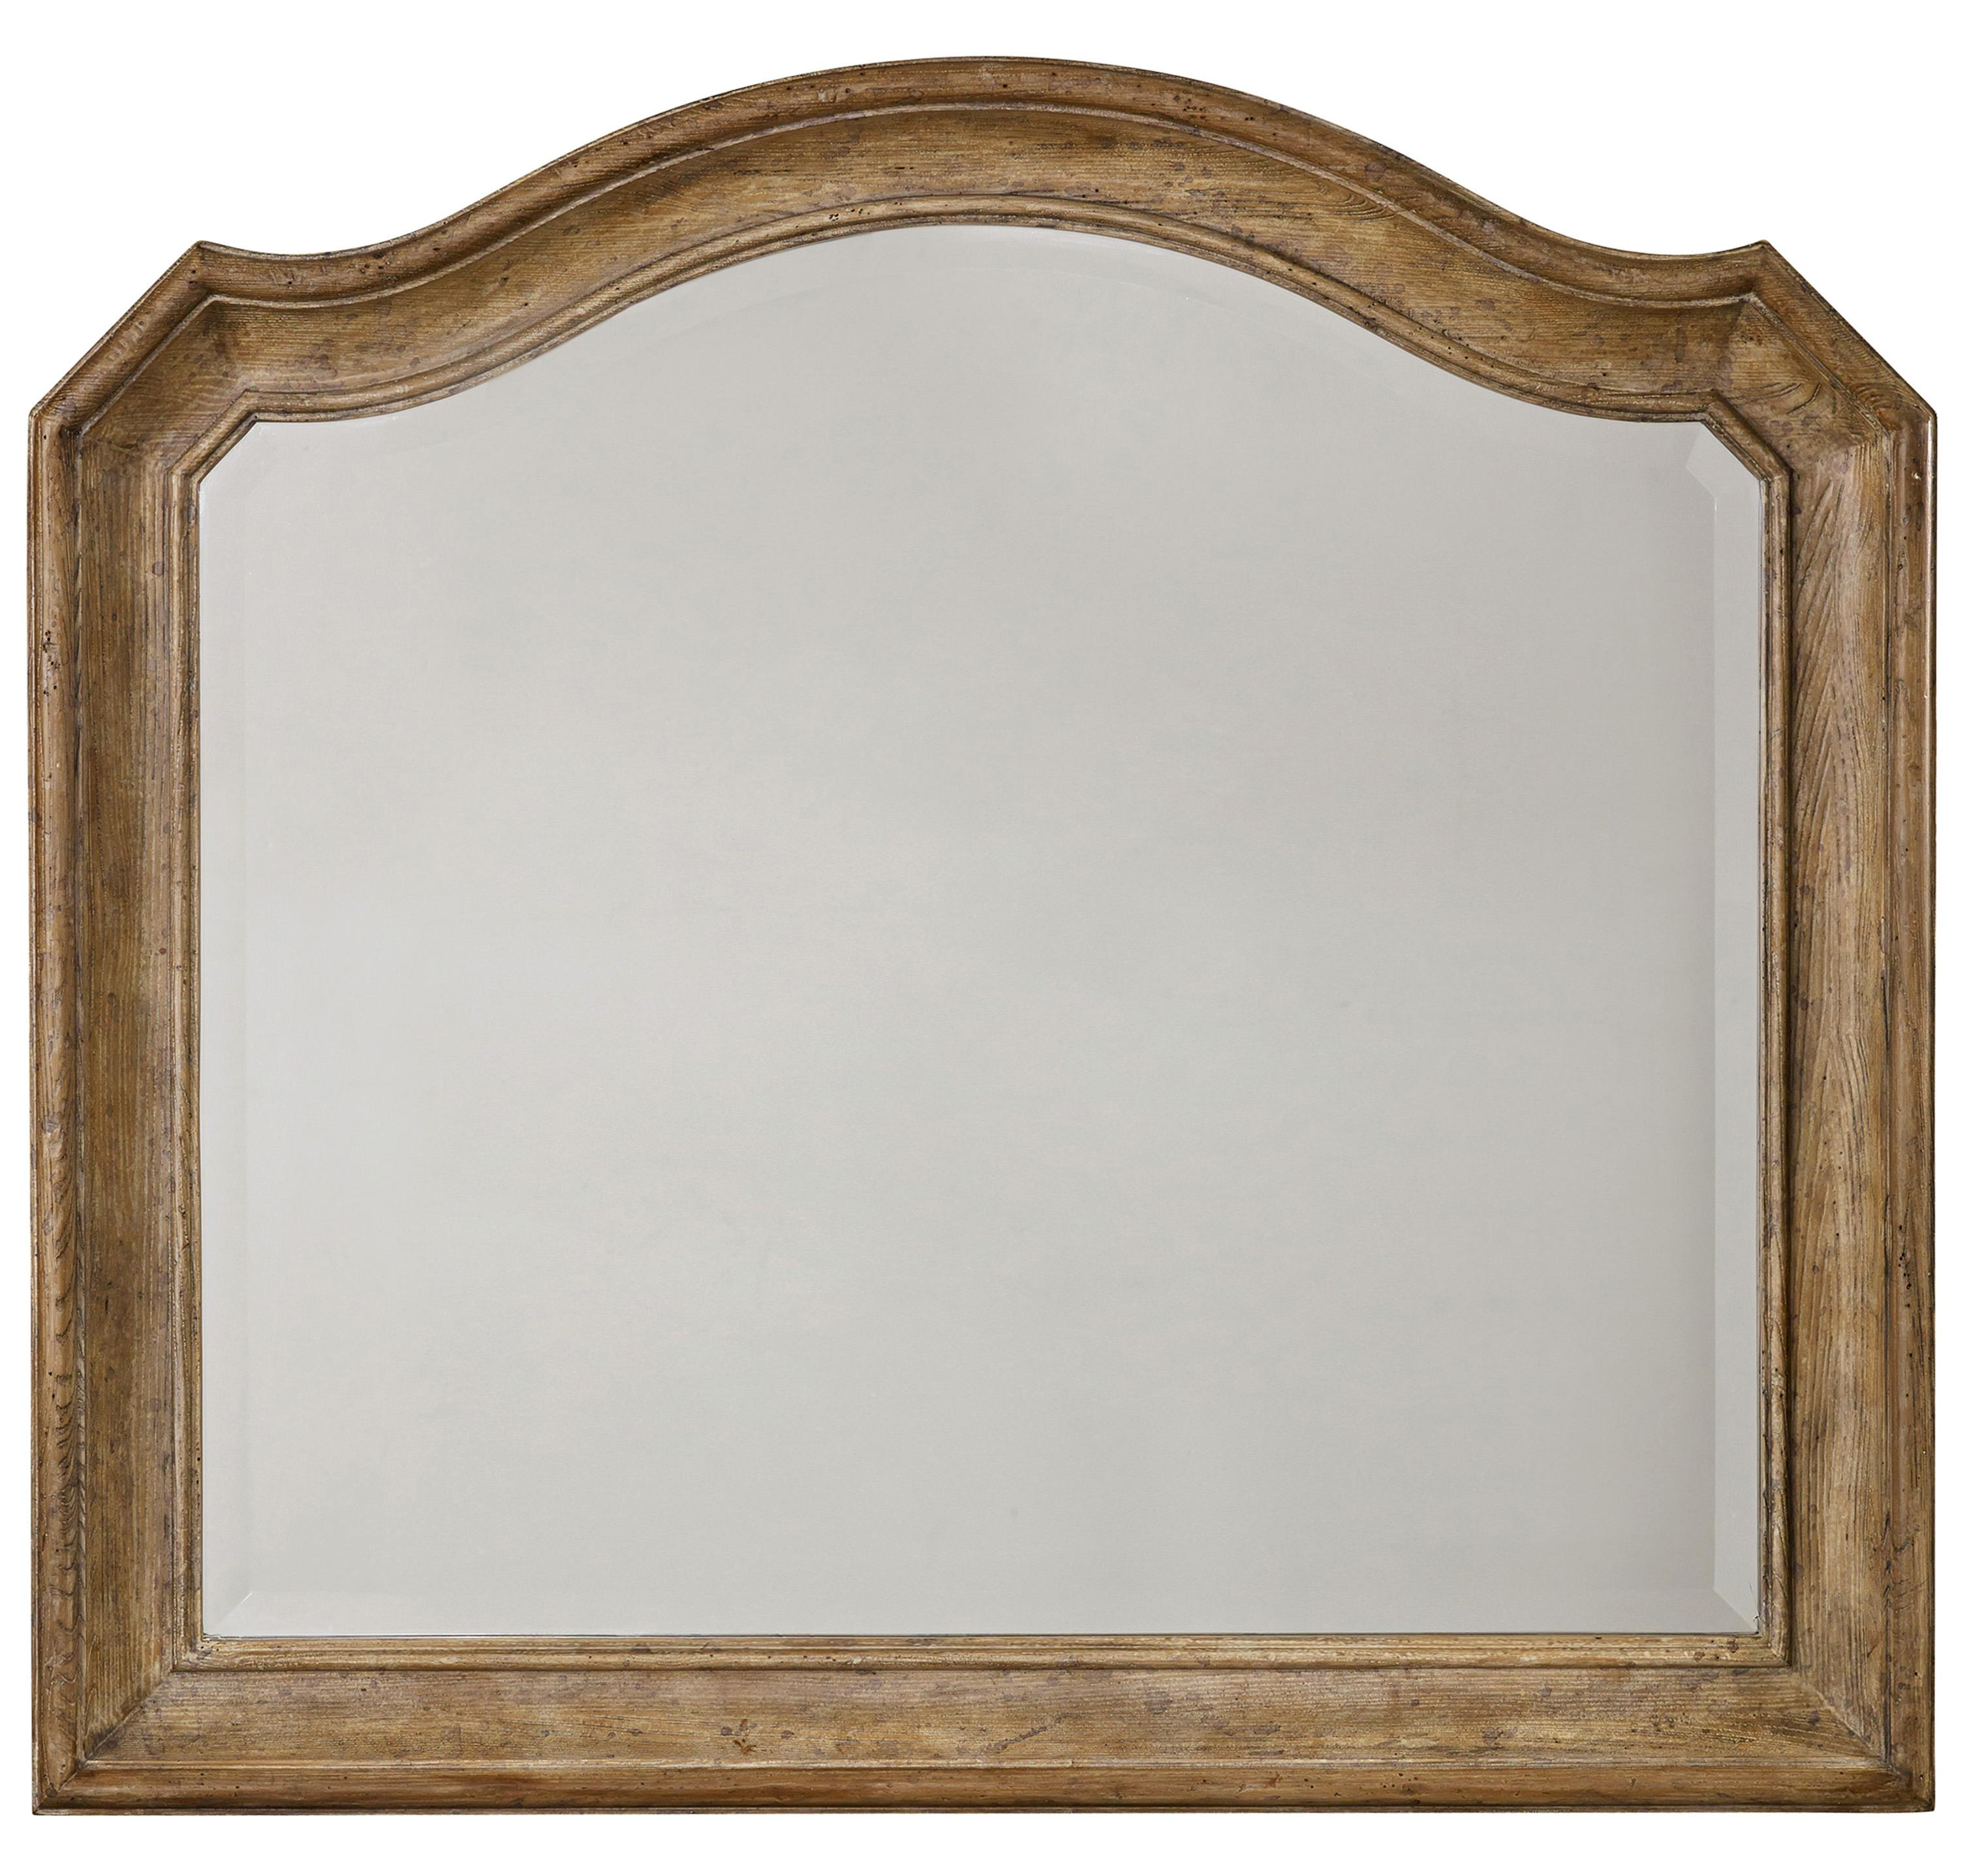 Hooker Furniture Solana Mirror - Item Number: 5291-90008